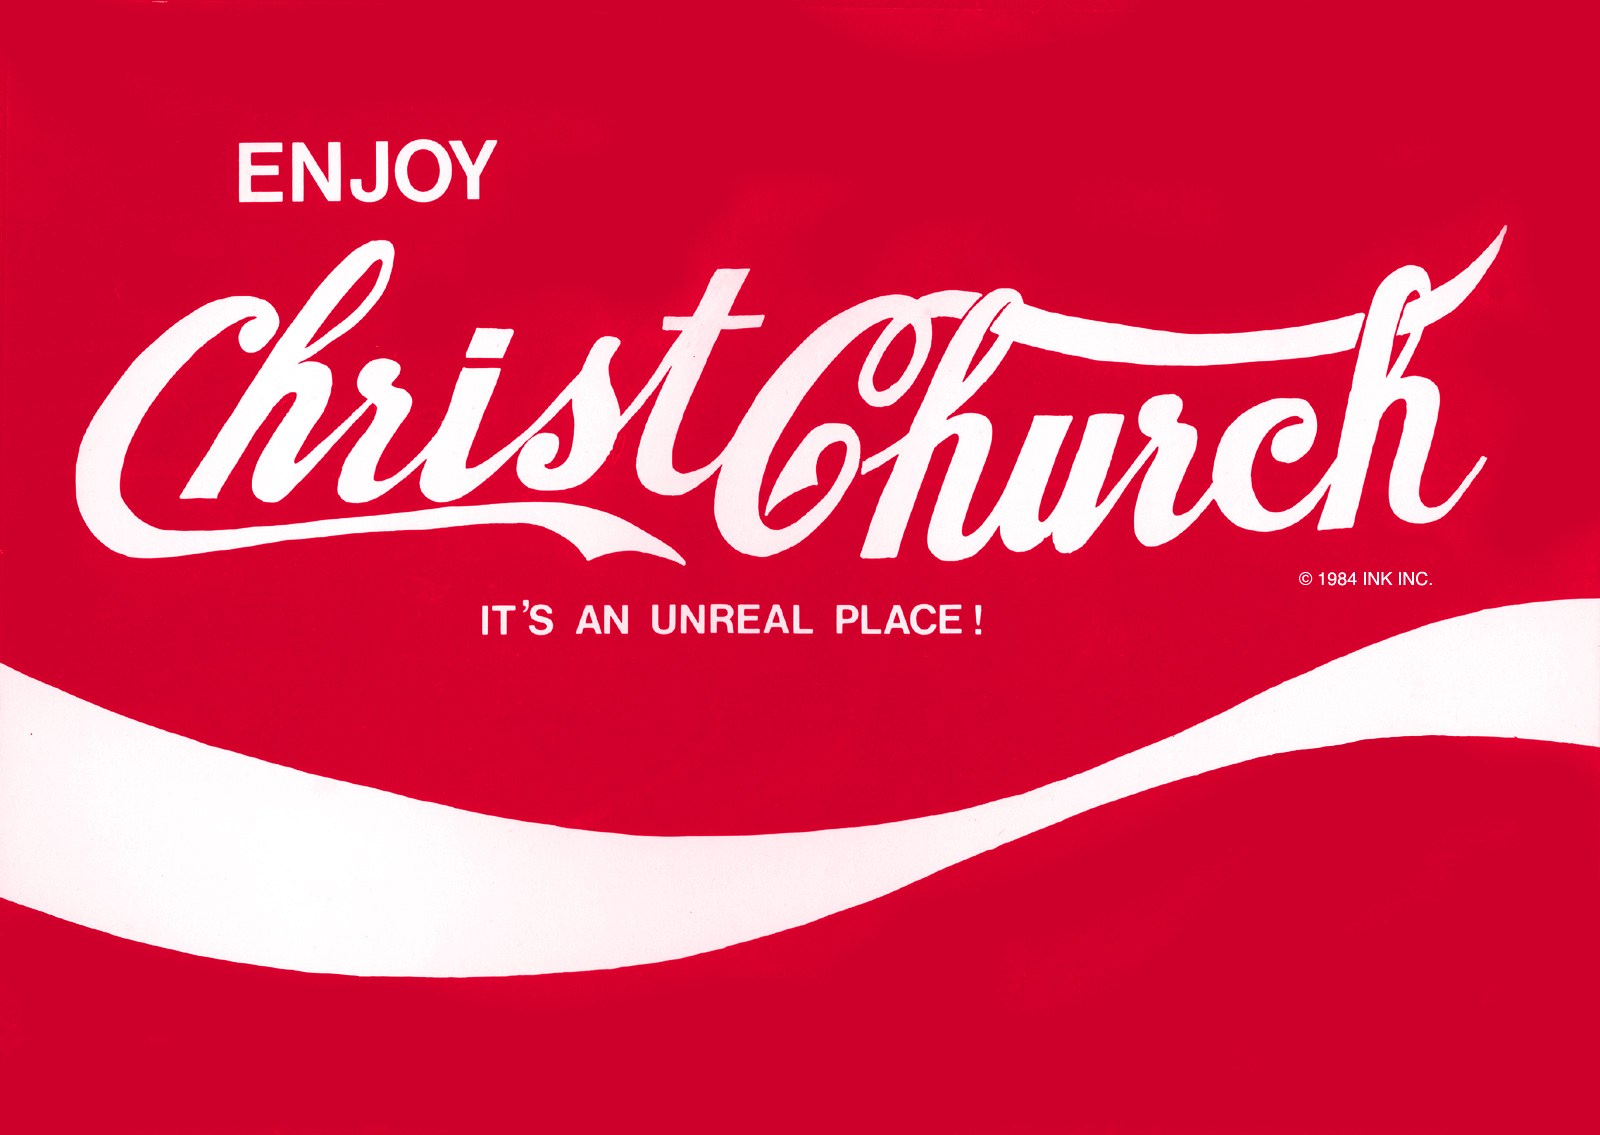 Enjoy Christchurch graphic by Stu pre-dated the Absolutely Wellington campaign by at least a decade!